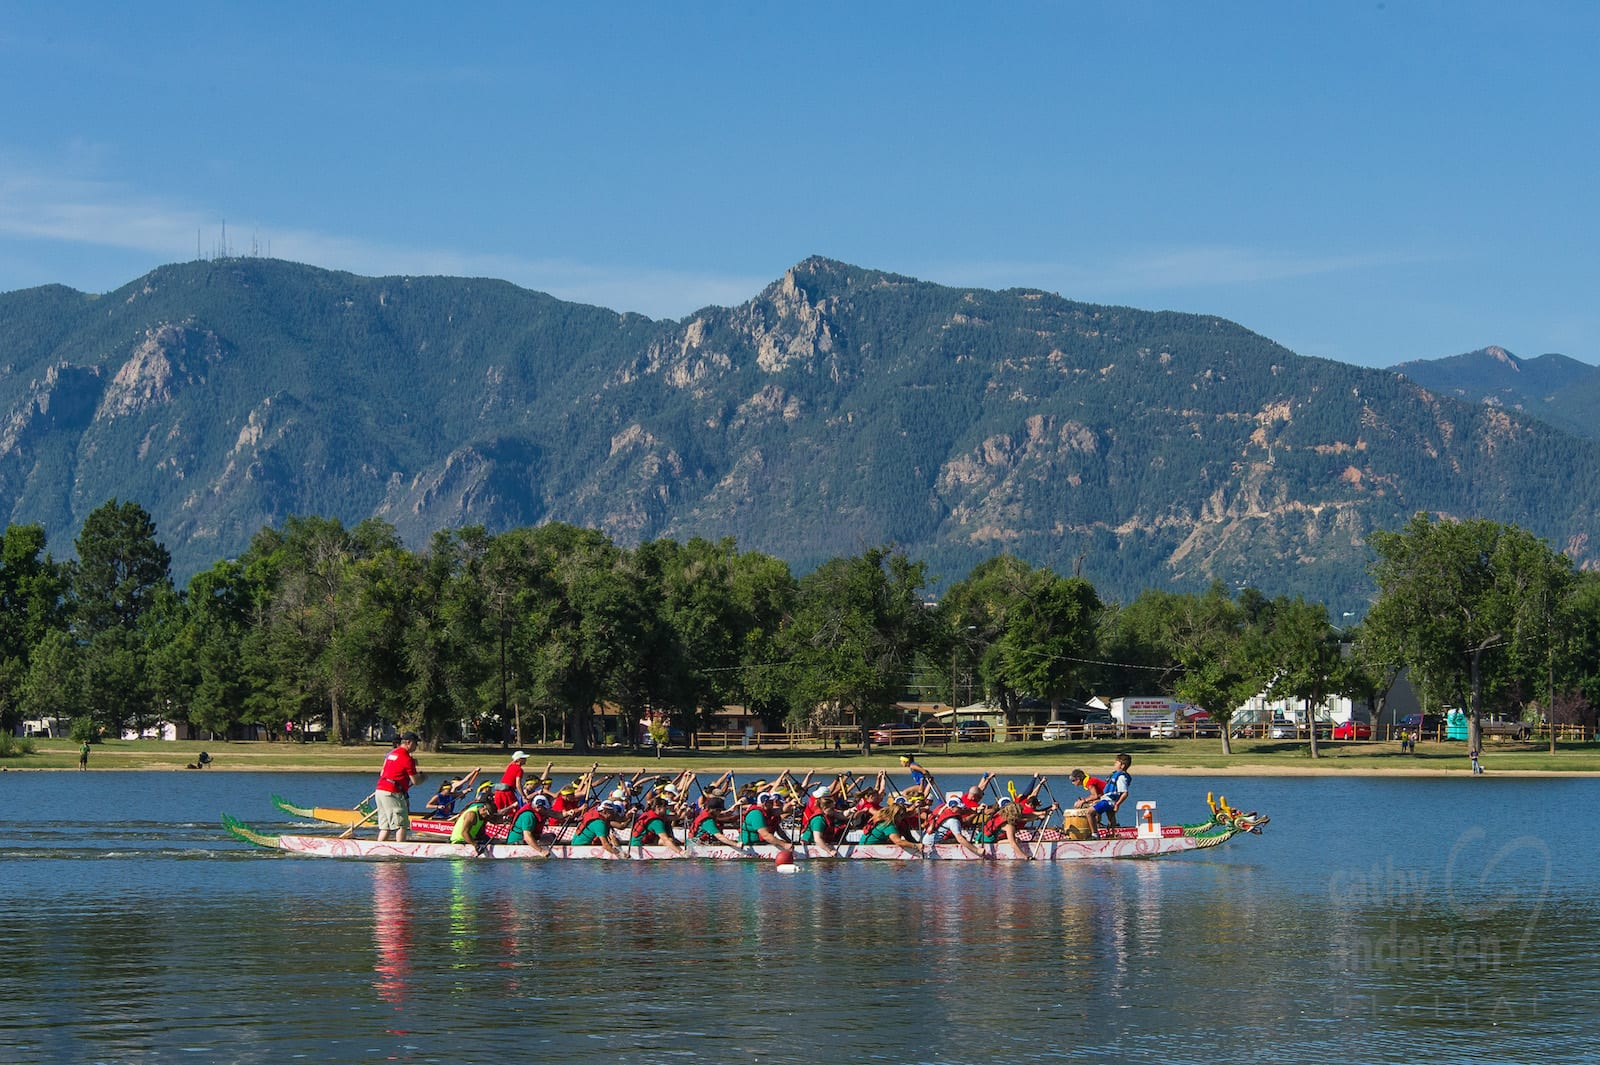 Dragon Boat Race, Prospect Lake, Memorial Park, Colorado Springs, CO